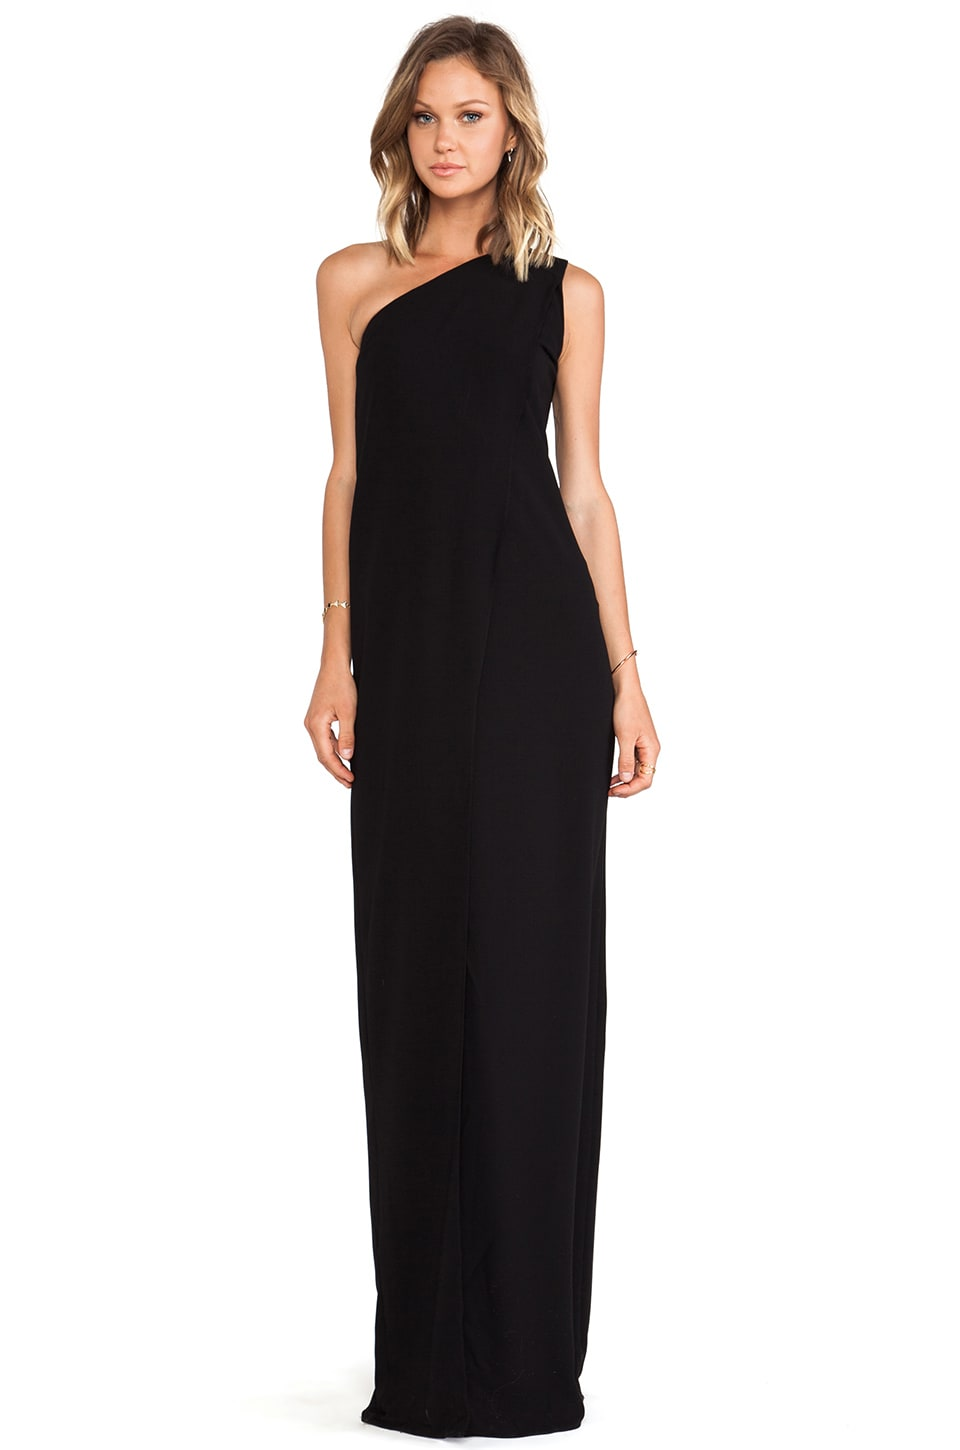 SOLACE London Bourdan Maxi Dress in Black